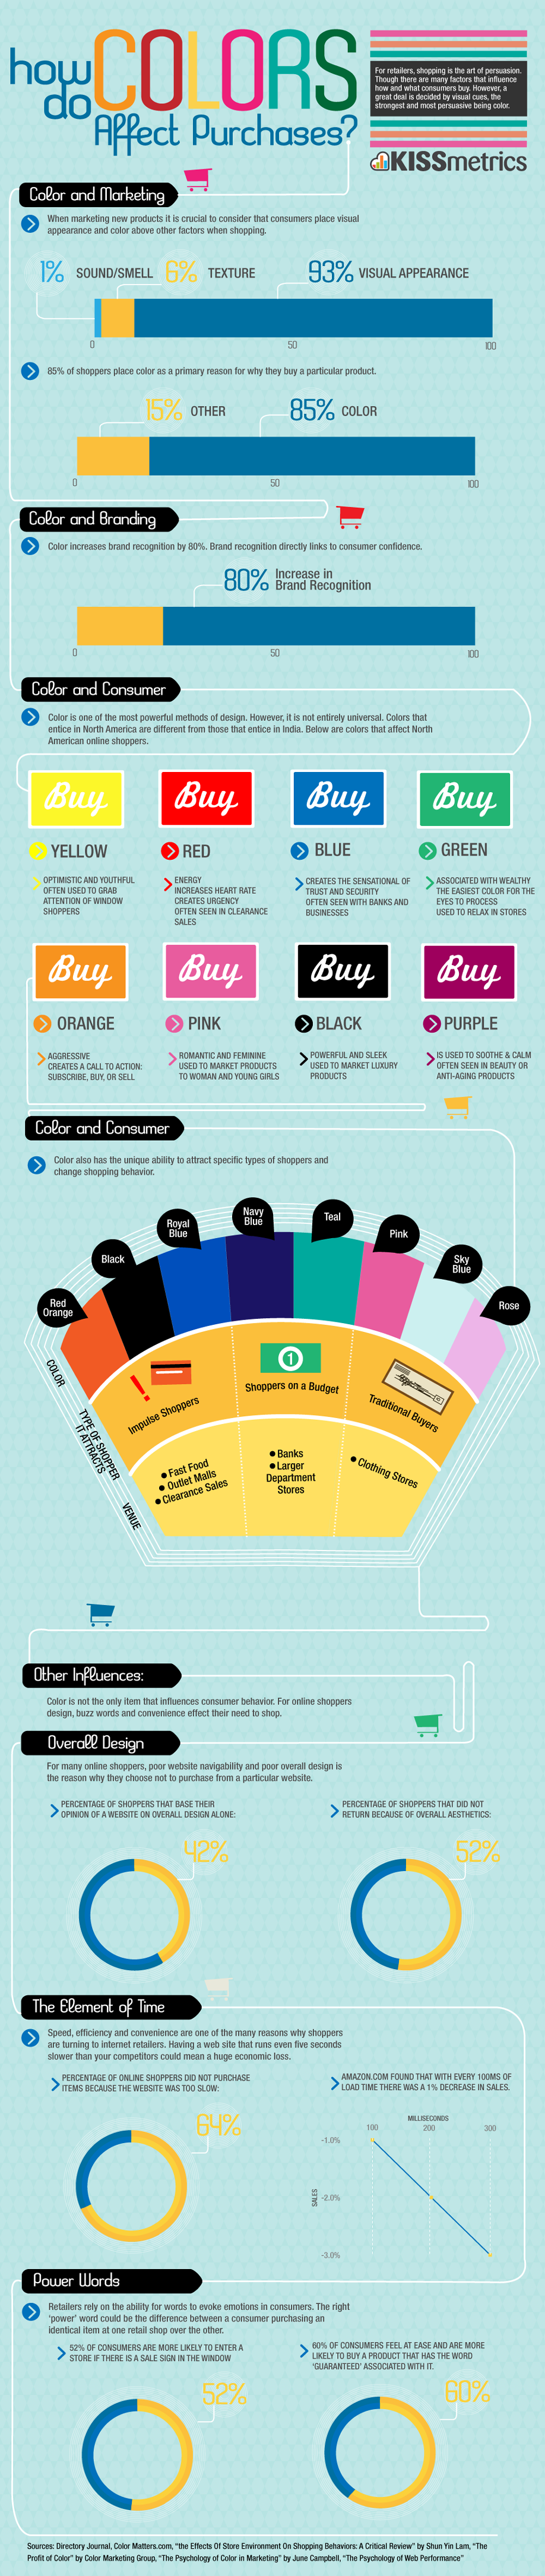 Infographic: How Do Colors Affect Purchases?